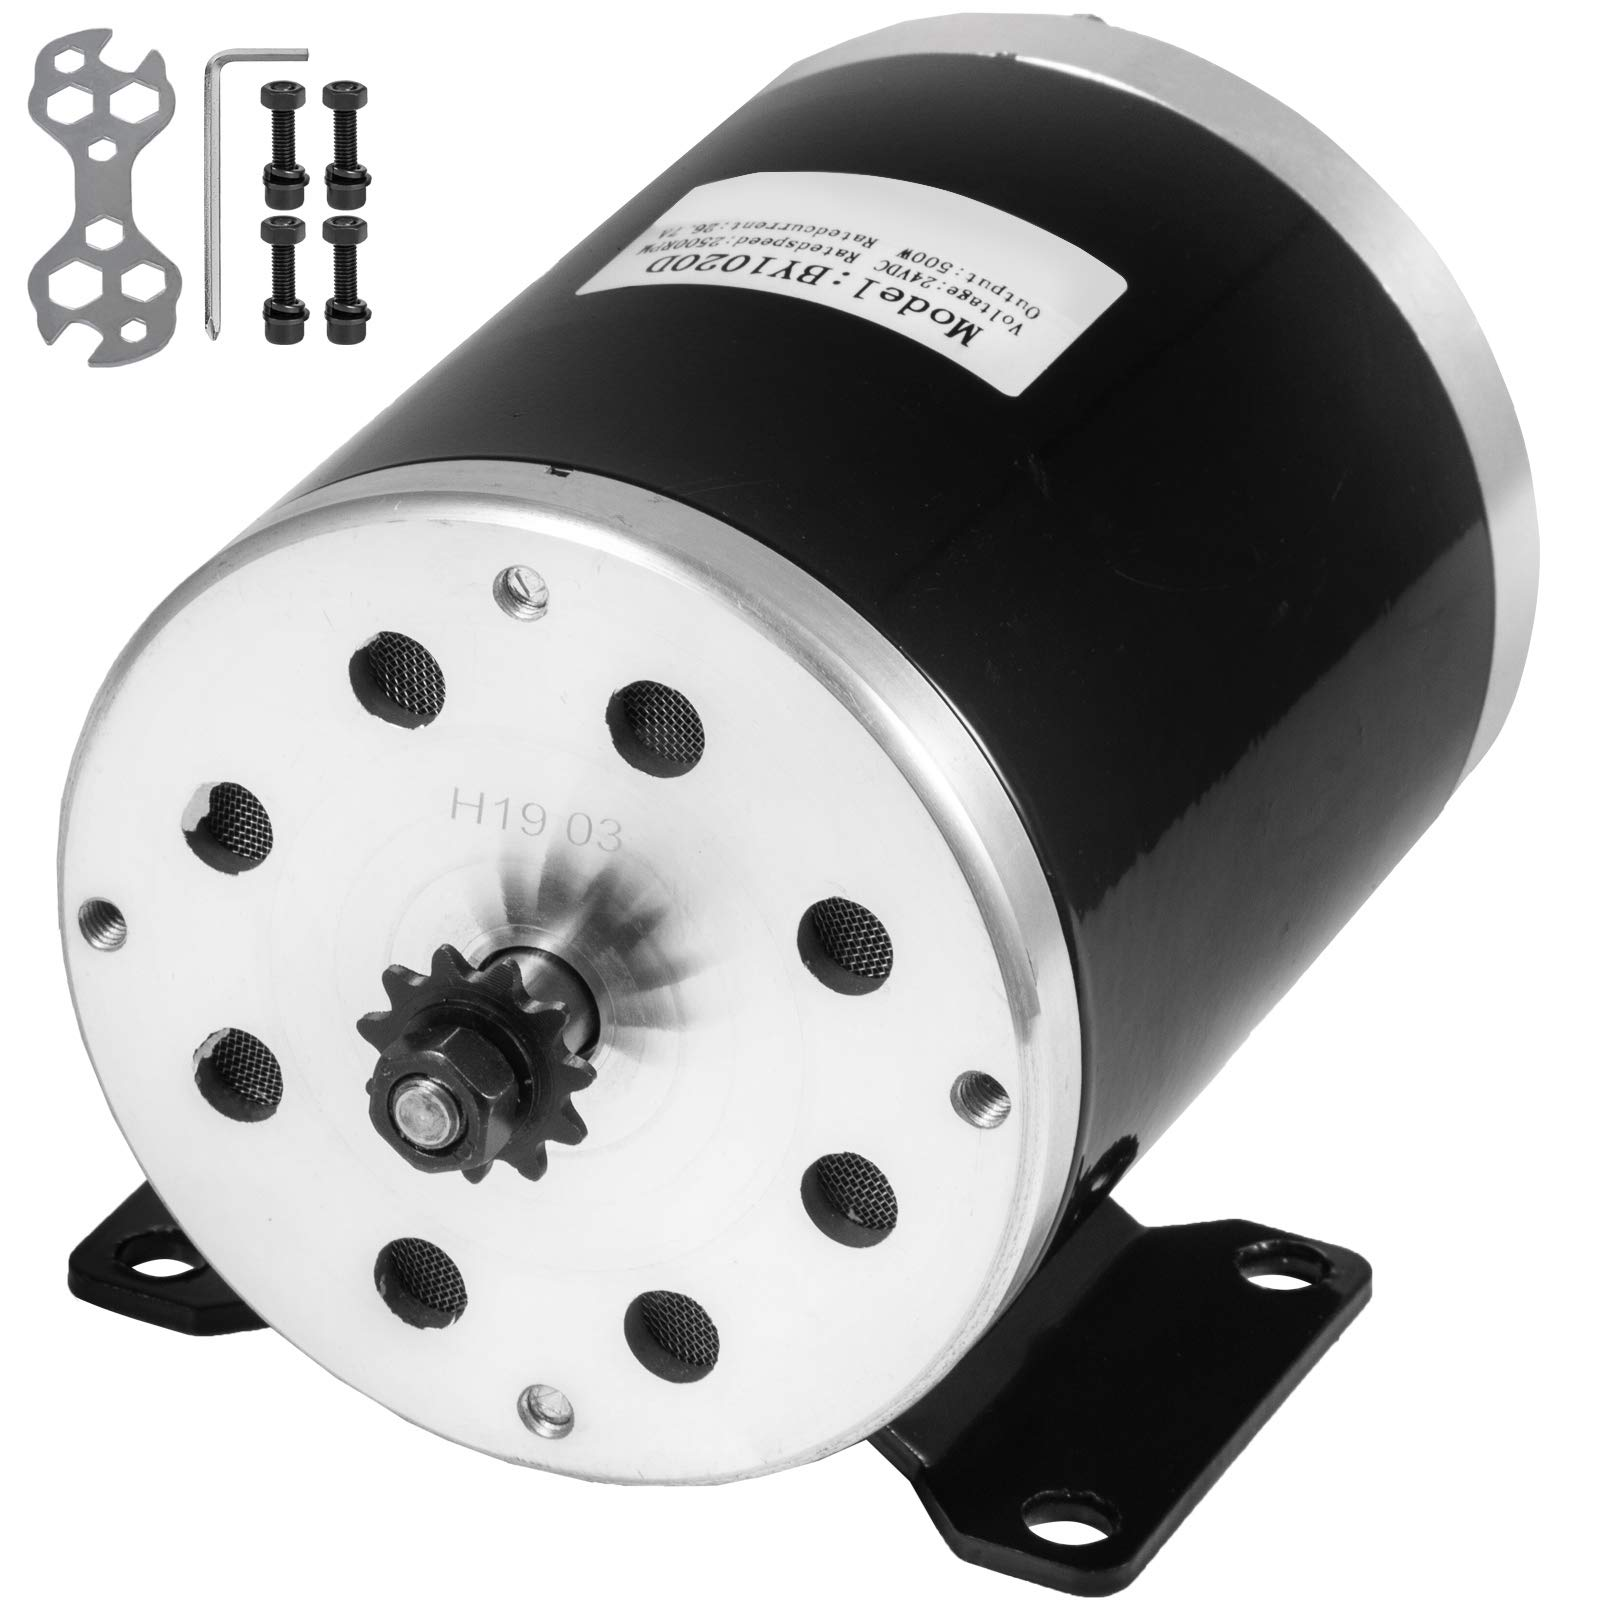 Mophorn Electric Brushed Motor 24V DC 500 Watt with 11Tooth 25Chain Sprocket and Mounting Bracket for Go Karts Scooters & E-Bike by Mophorn